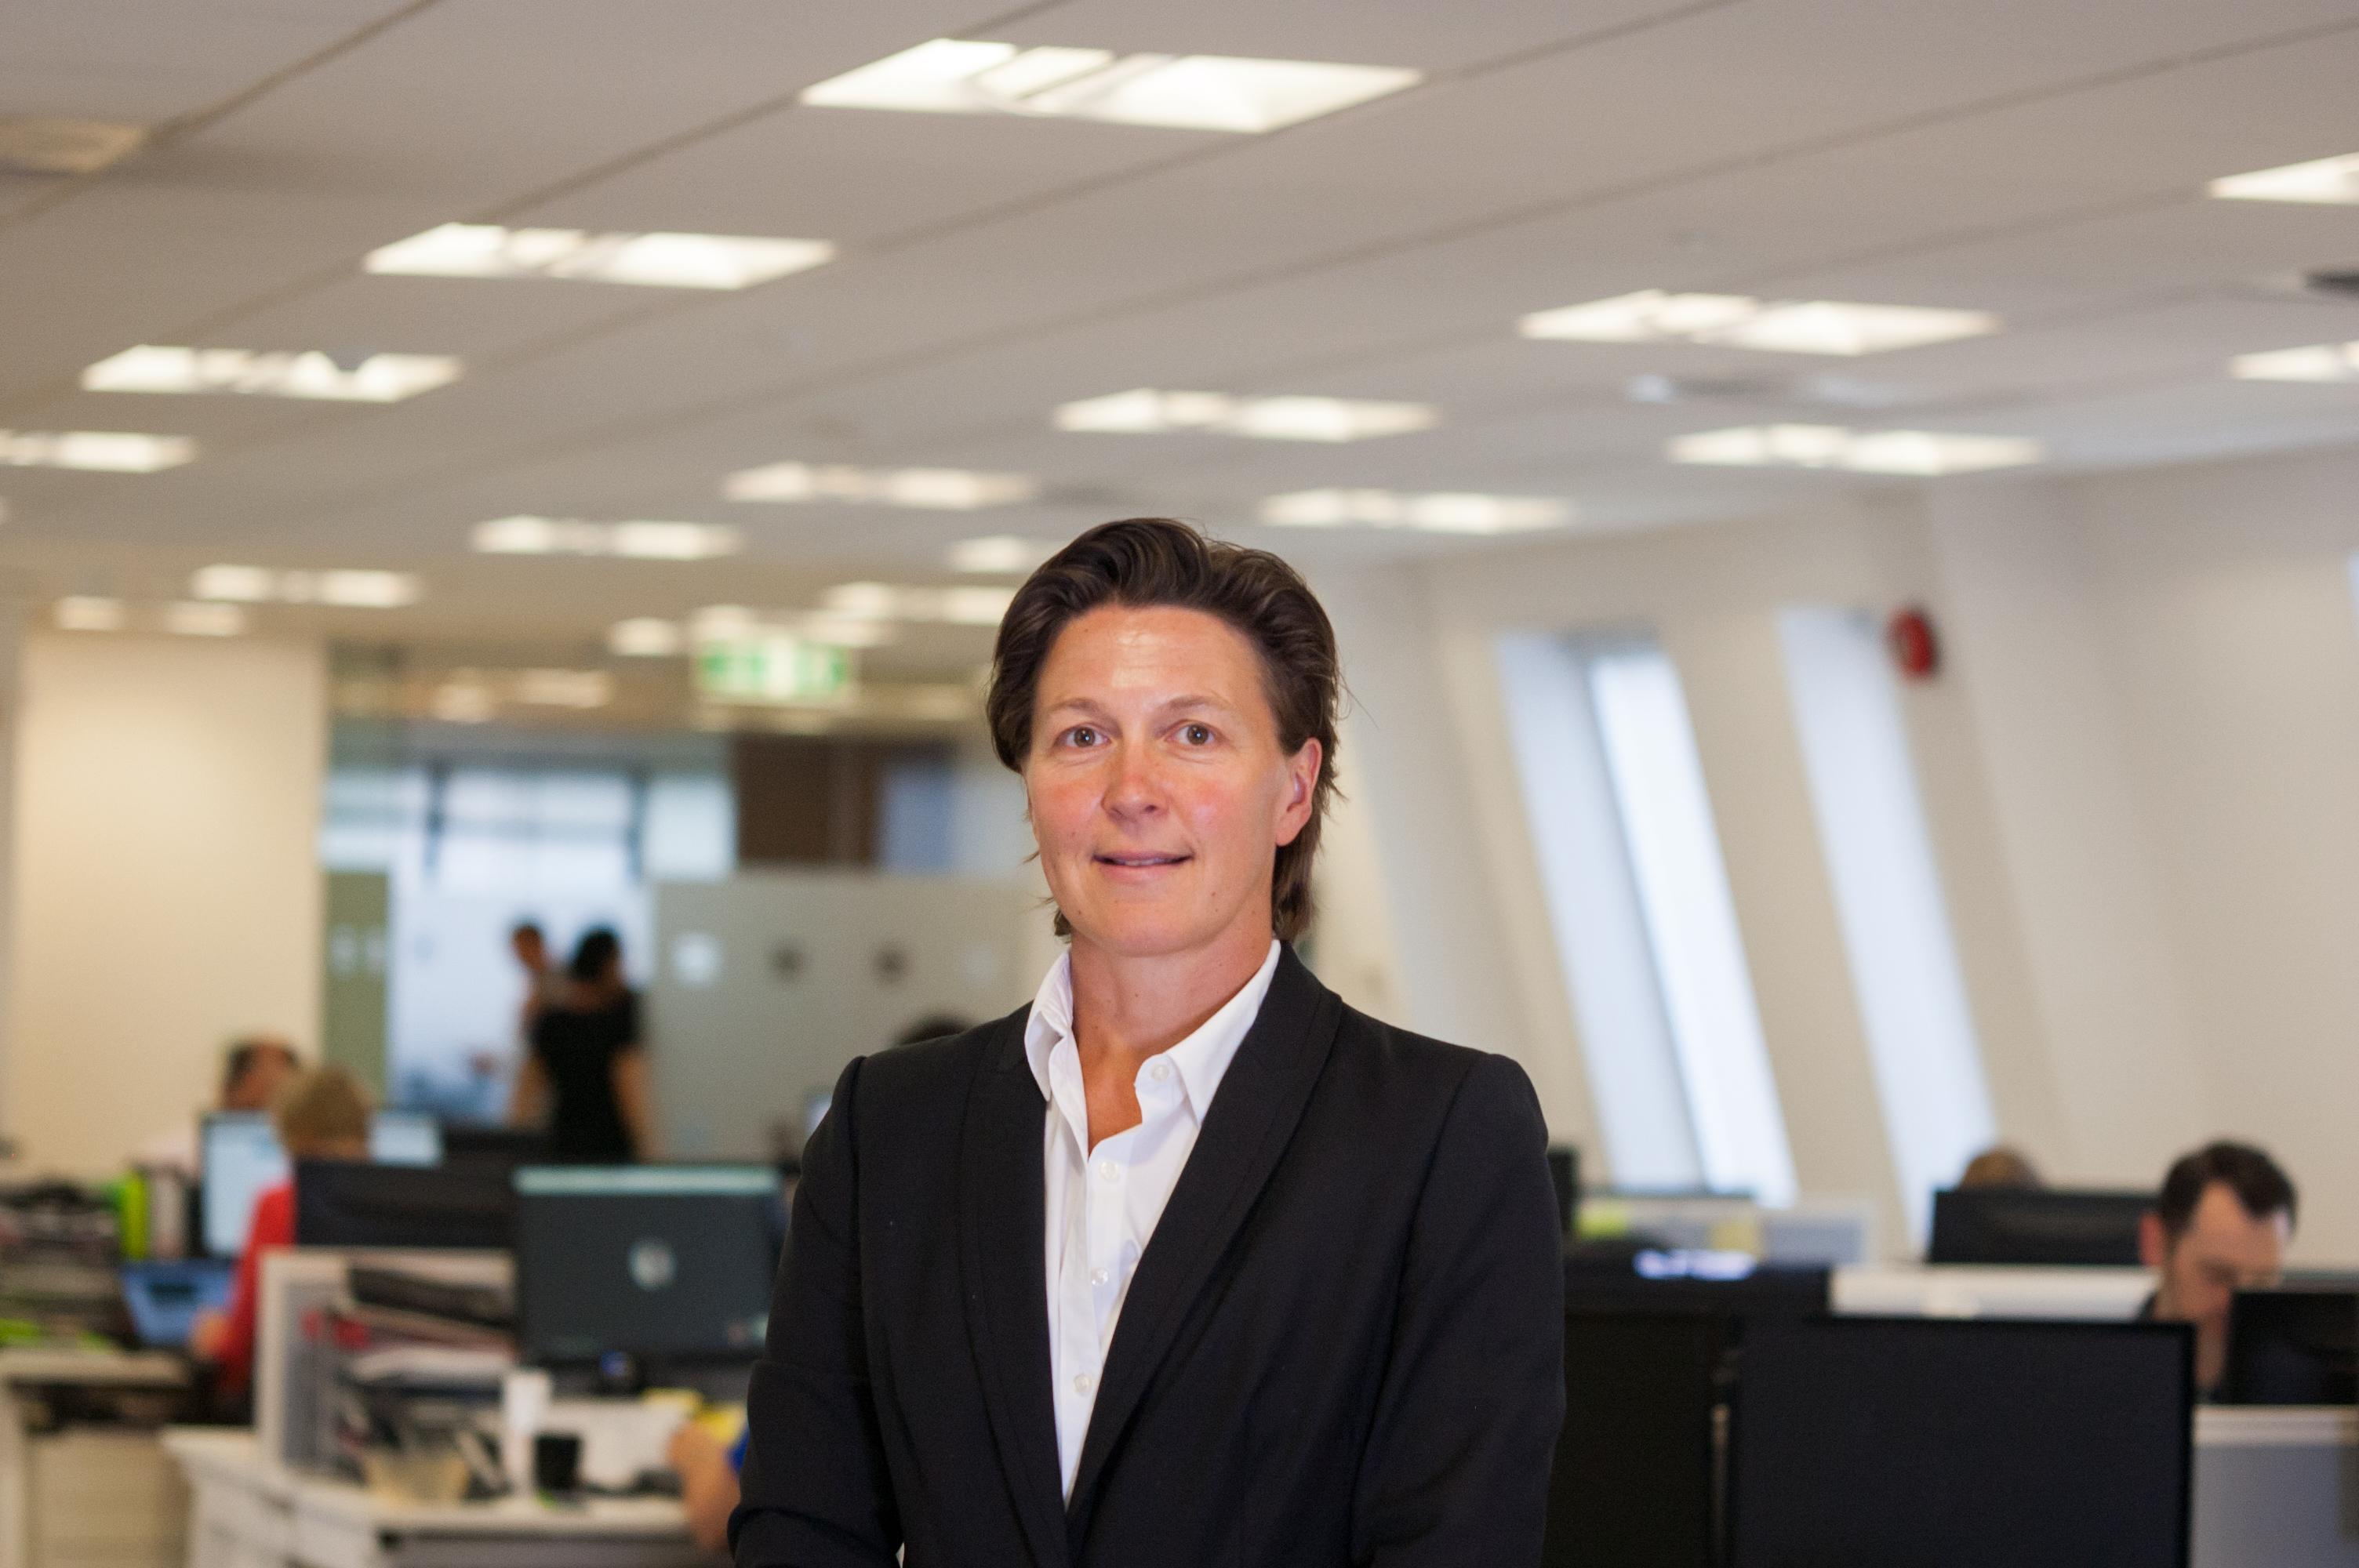 Kate Lander has joined Eukleia Training in the newly created role of Chief Strategy Officer